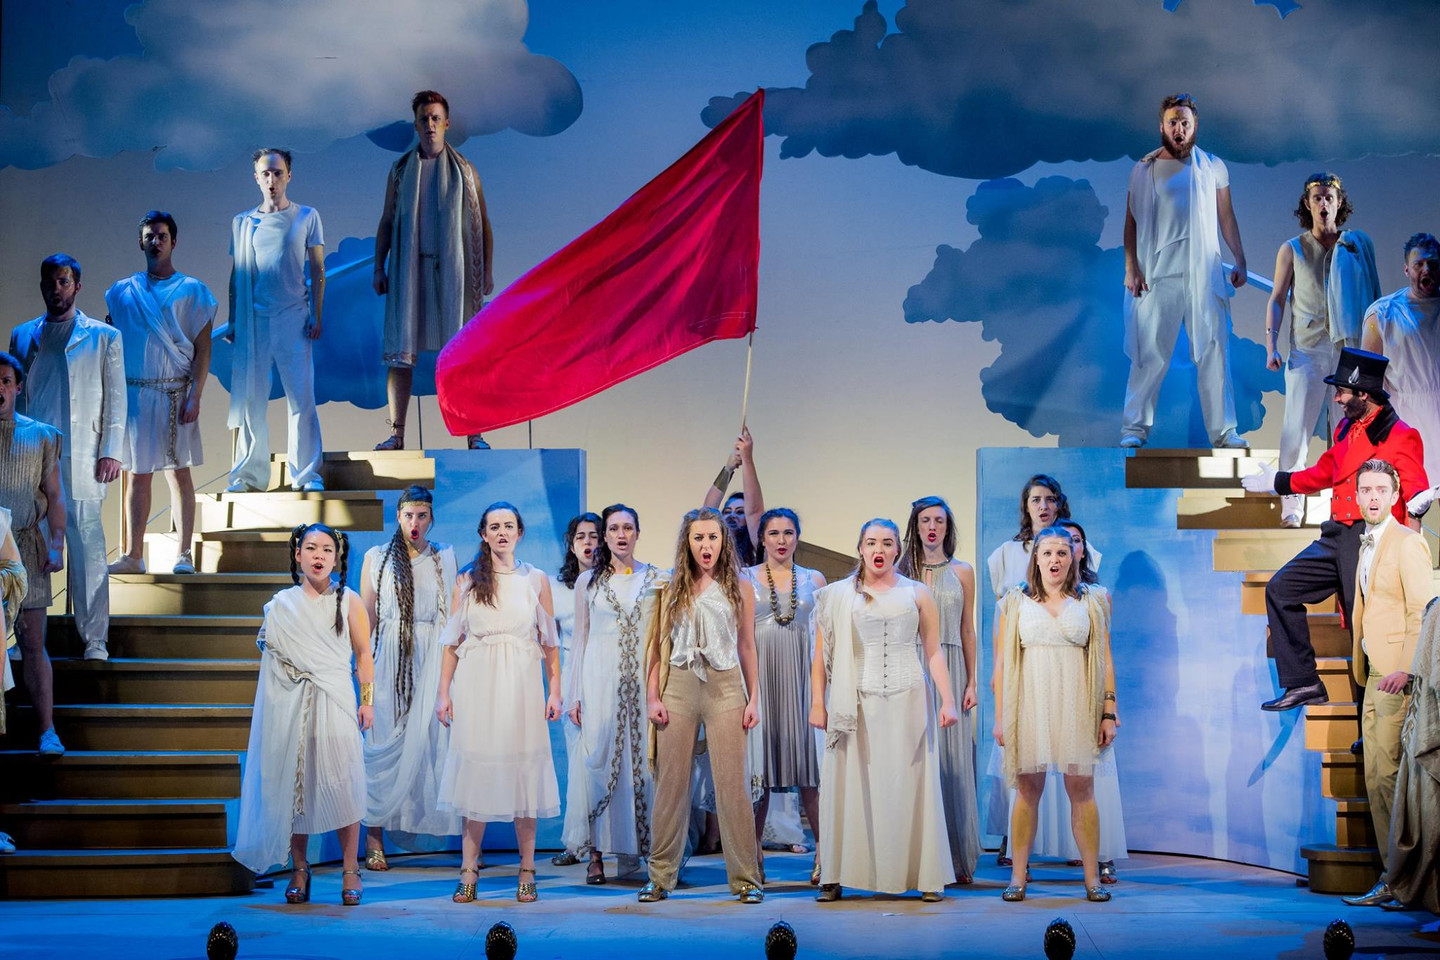 Orpheus aux Enfers - Offenbach - Royal Academy Opera